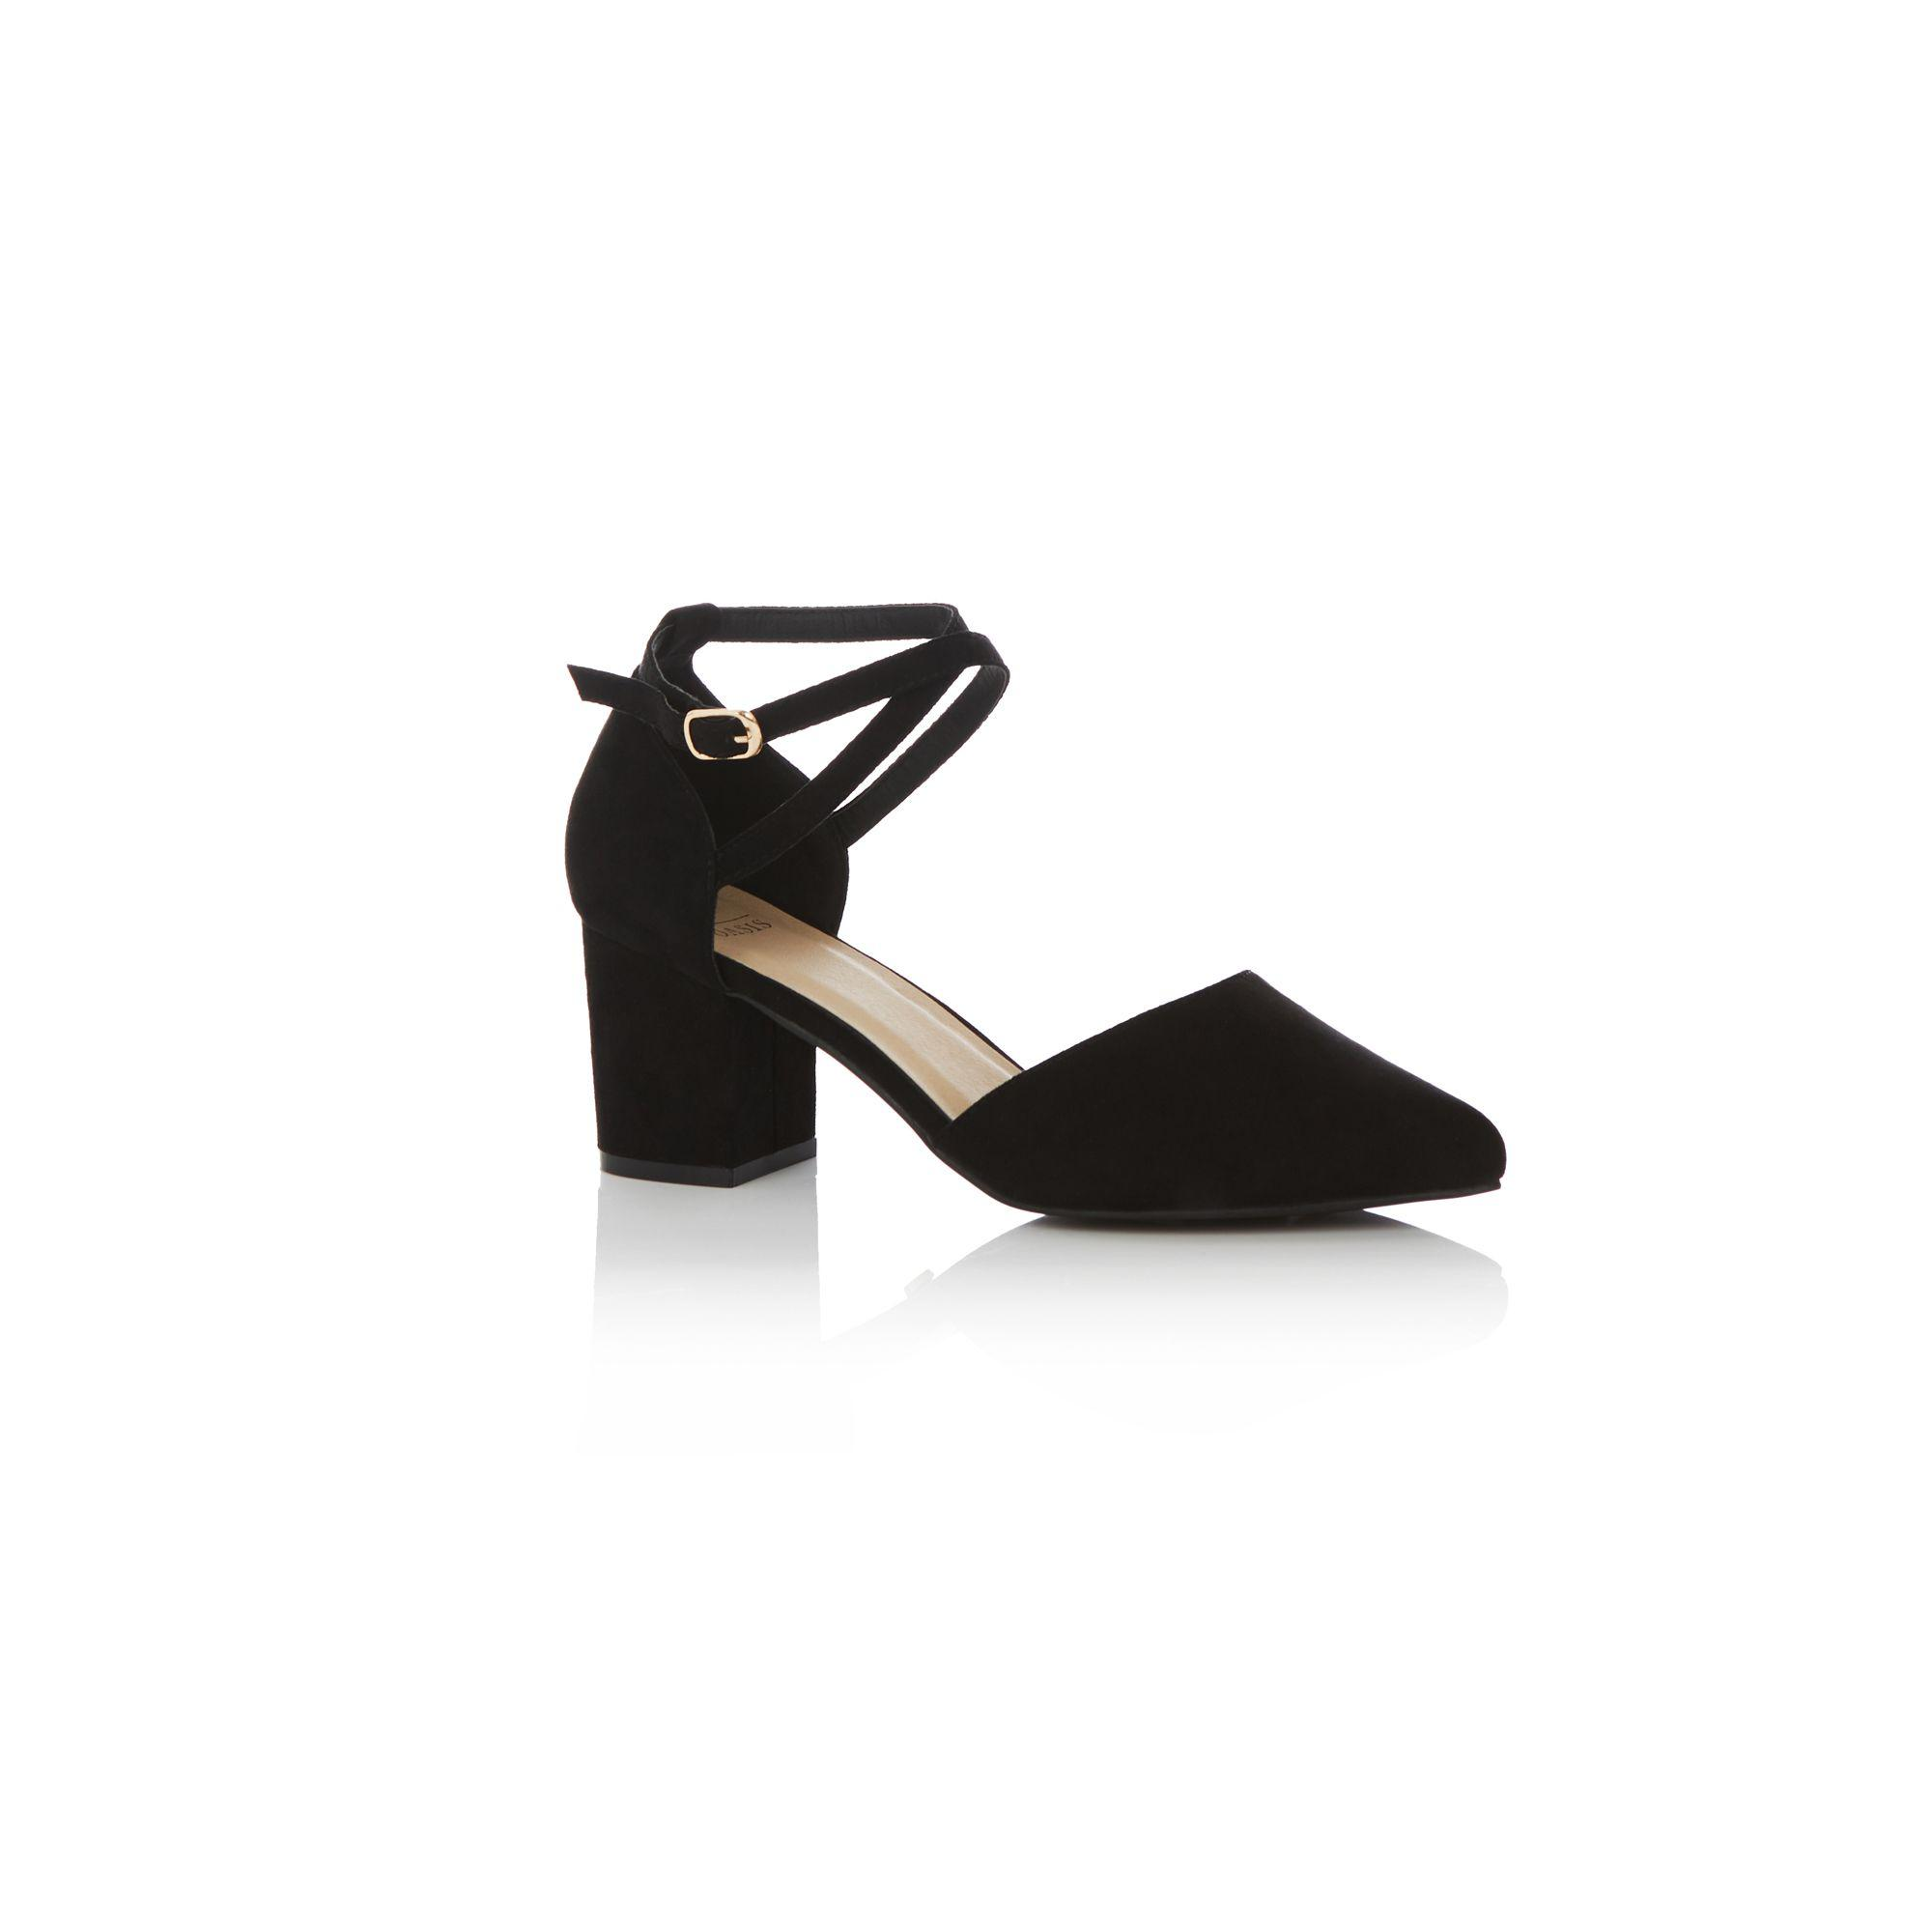 4b38751eef69 Oasis Black 'ruth' Block Heels Shoes in Black - Lyst